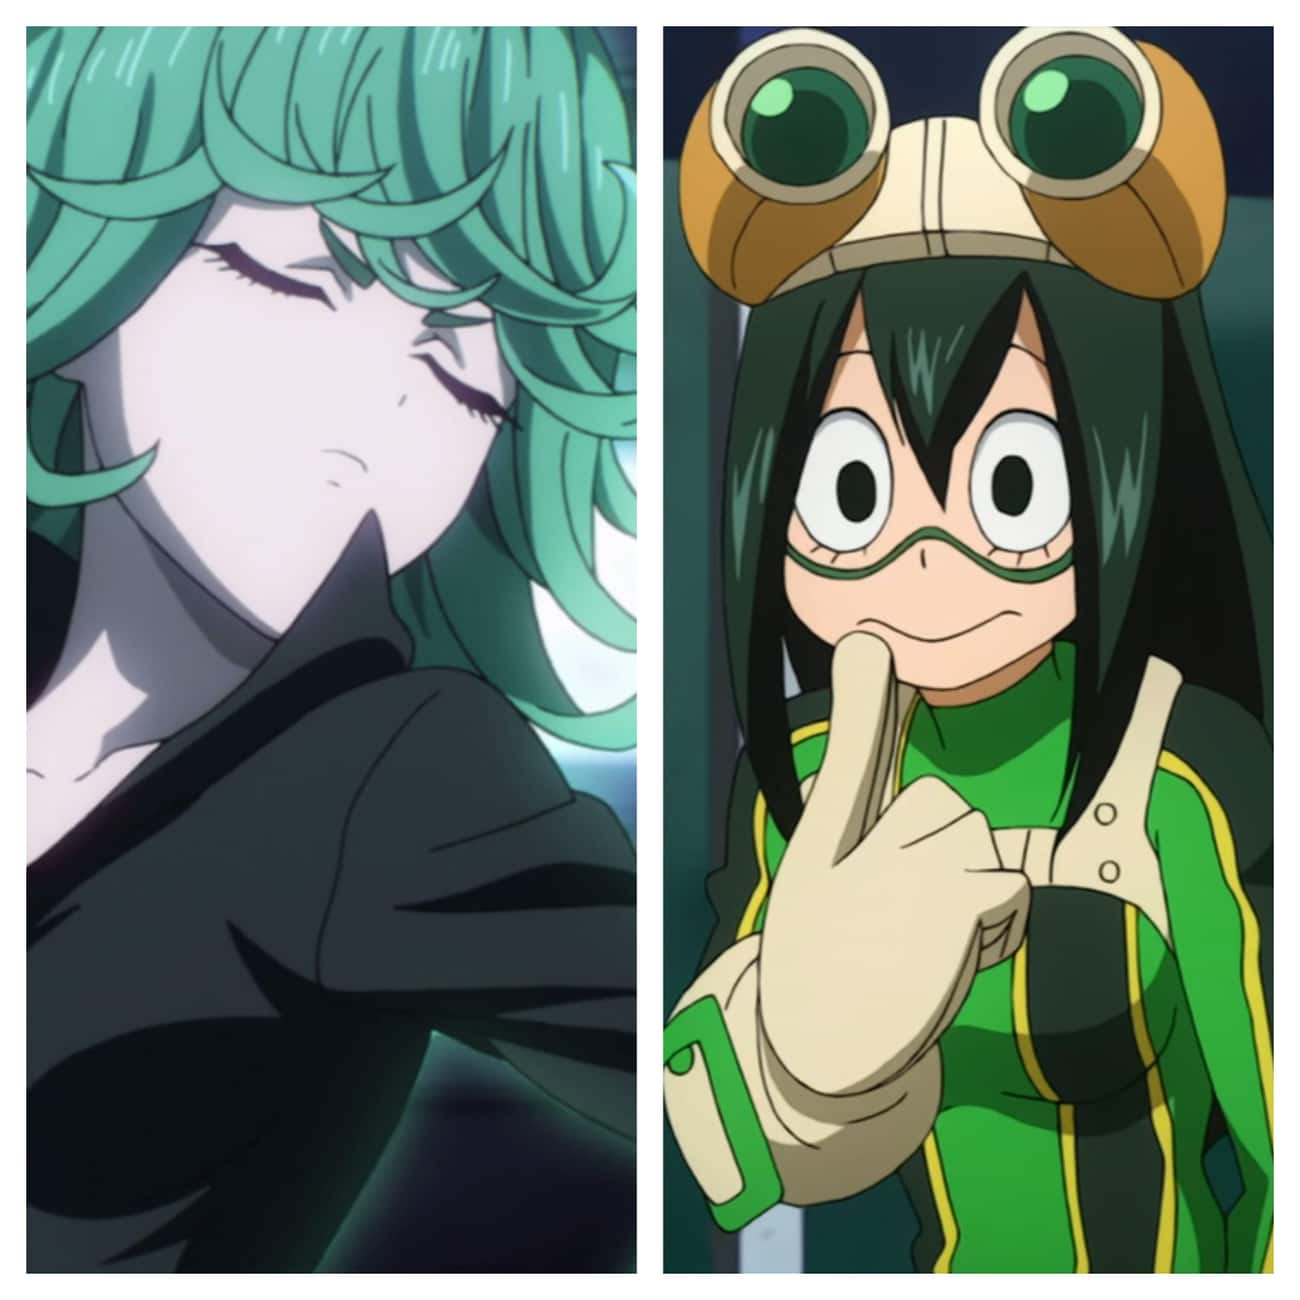 Tatsumaki Has The Same Voice A is listed (or ranked) 3 on the list Here Are All The Shared Voice Actors Between One Punch Man & MHA/Fairy Tail